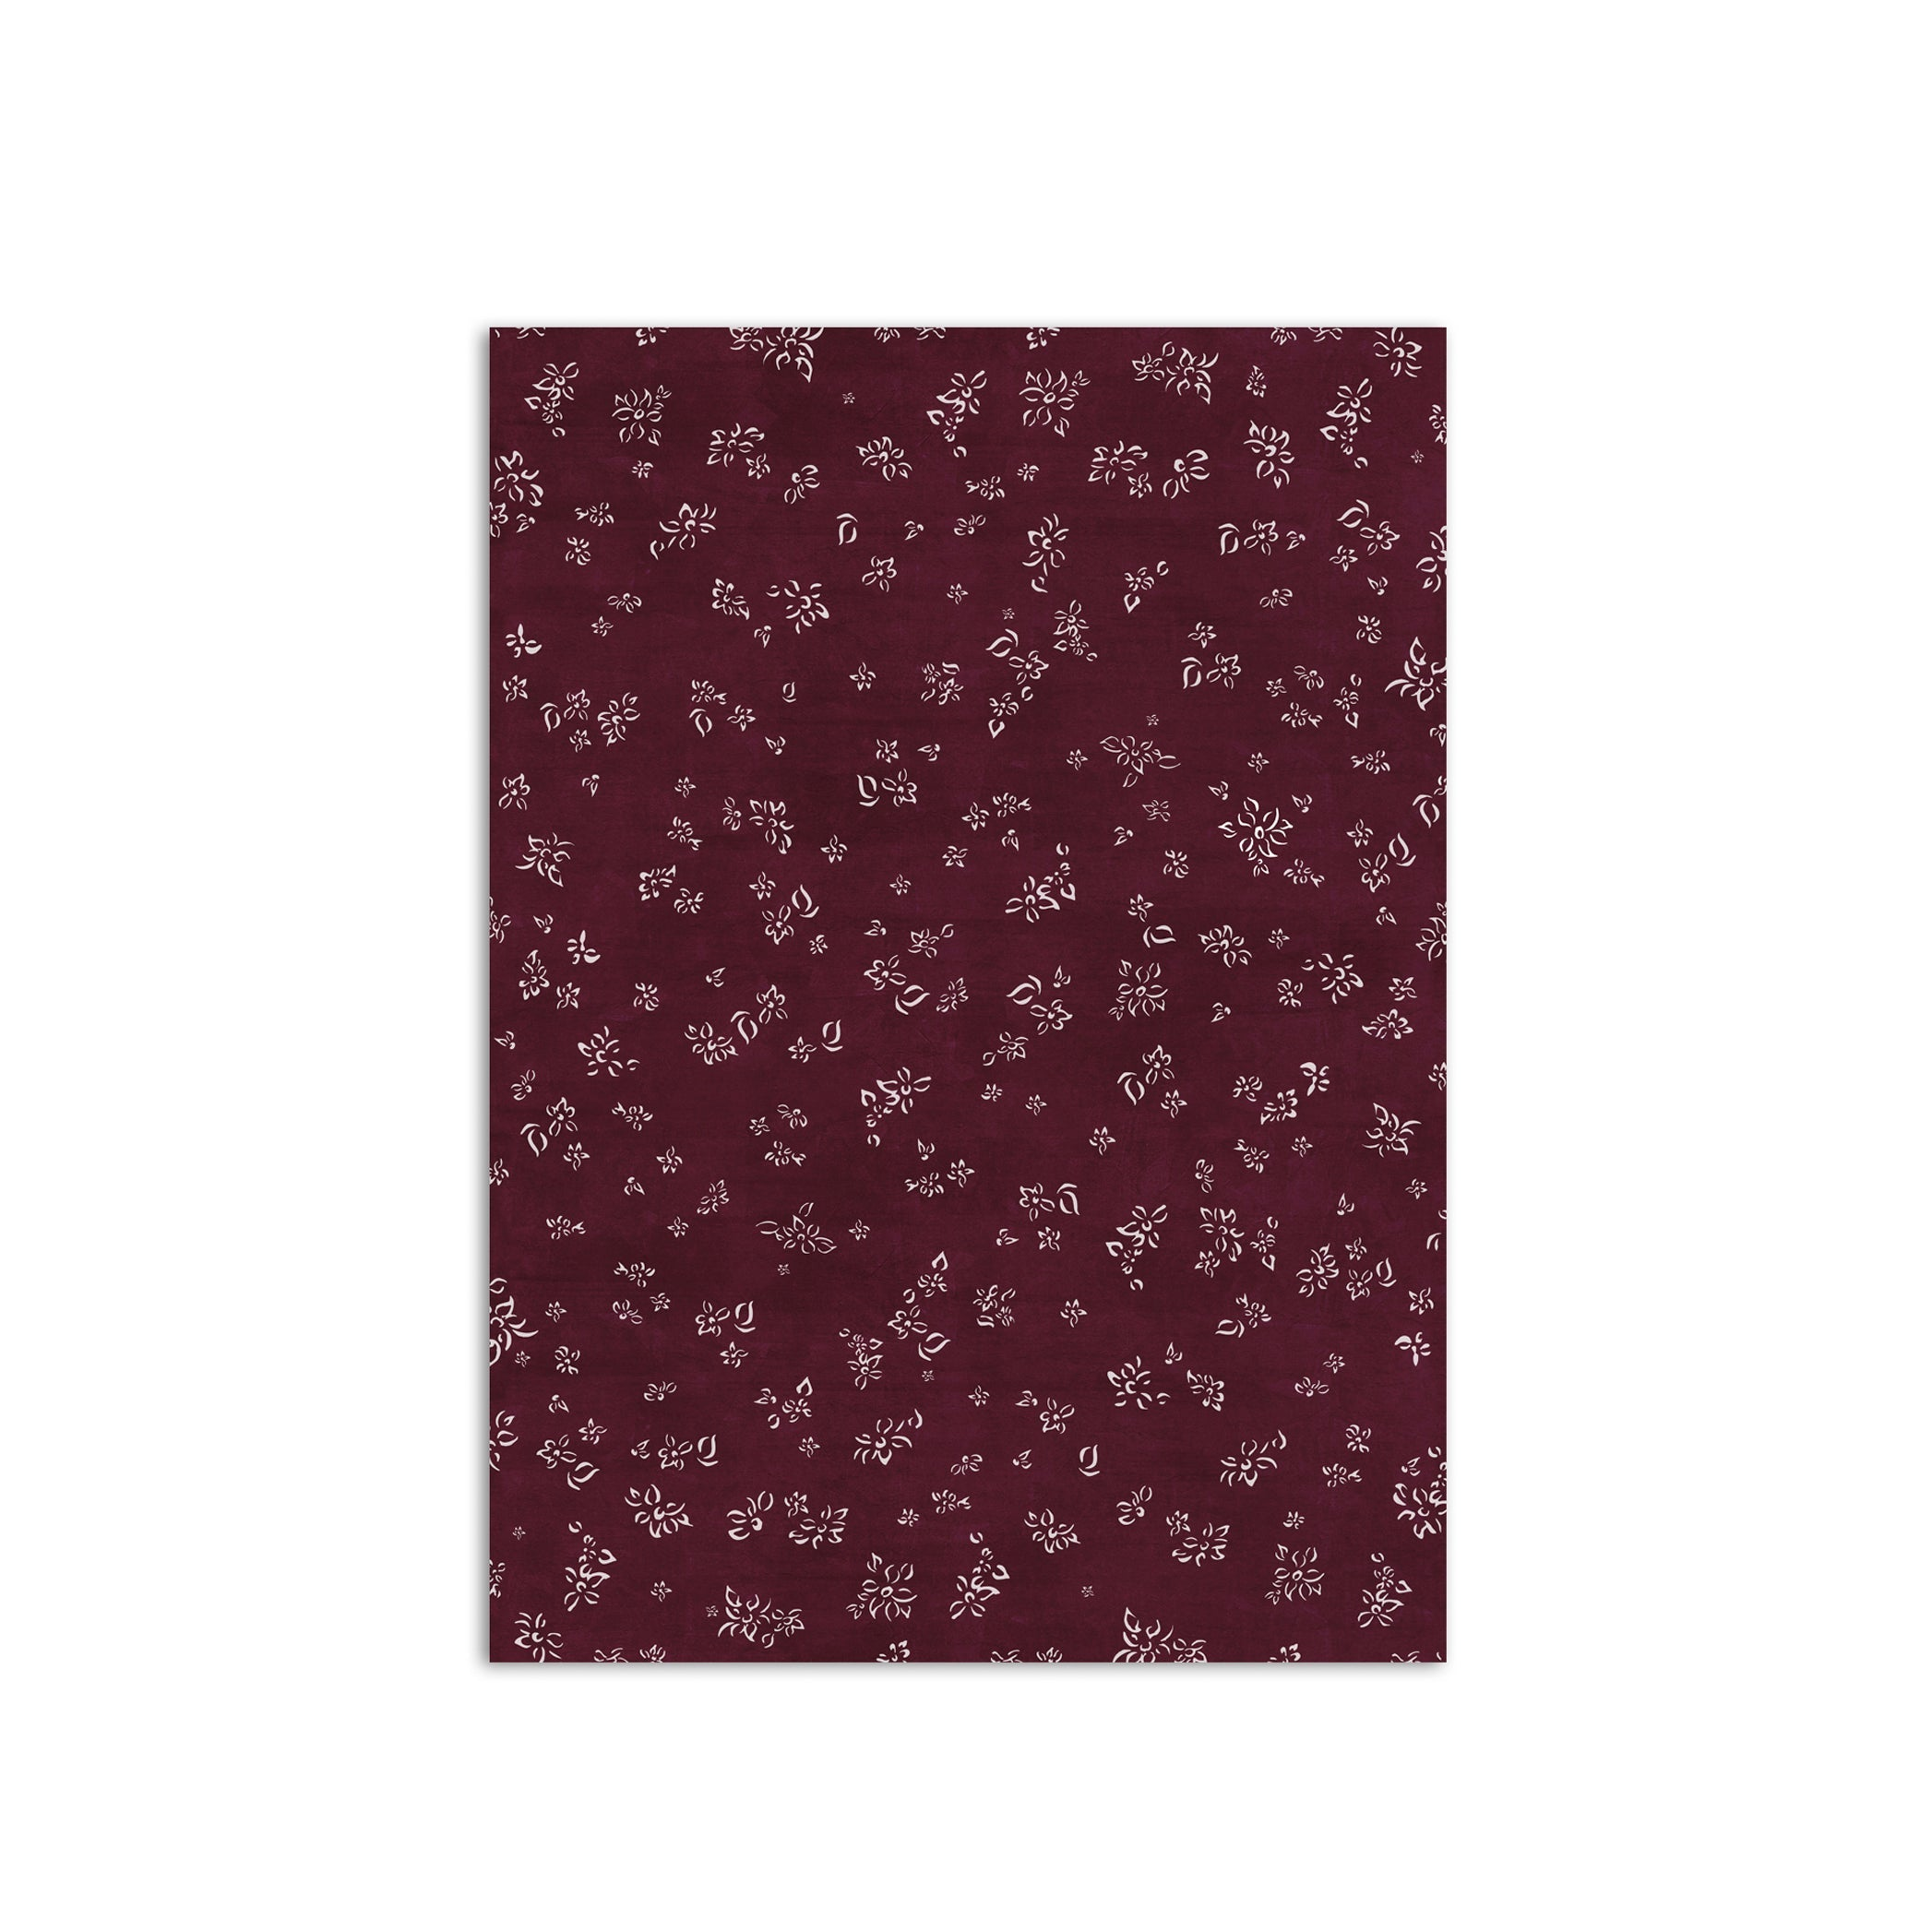 S&B Falling Flower Wrapping Paper in Grape Purple, Roll of 4